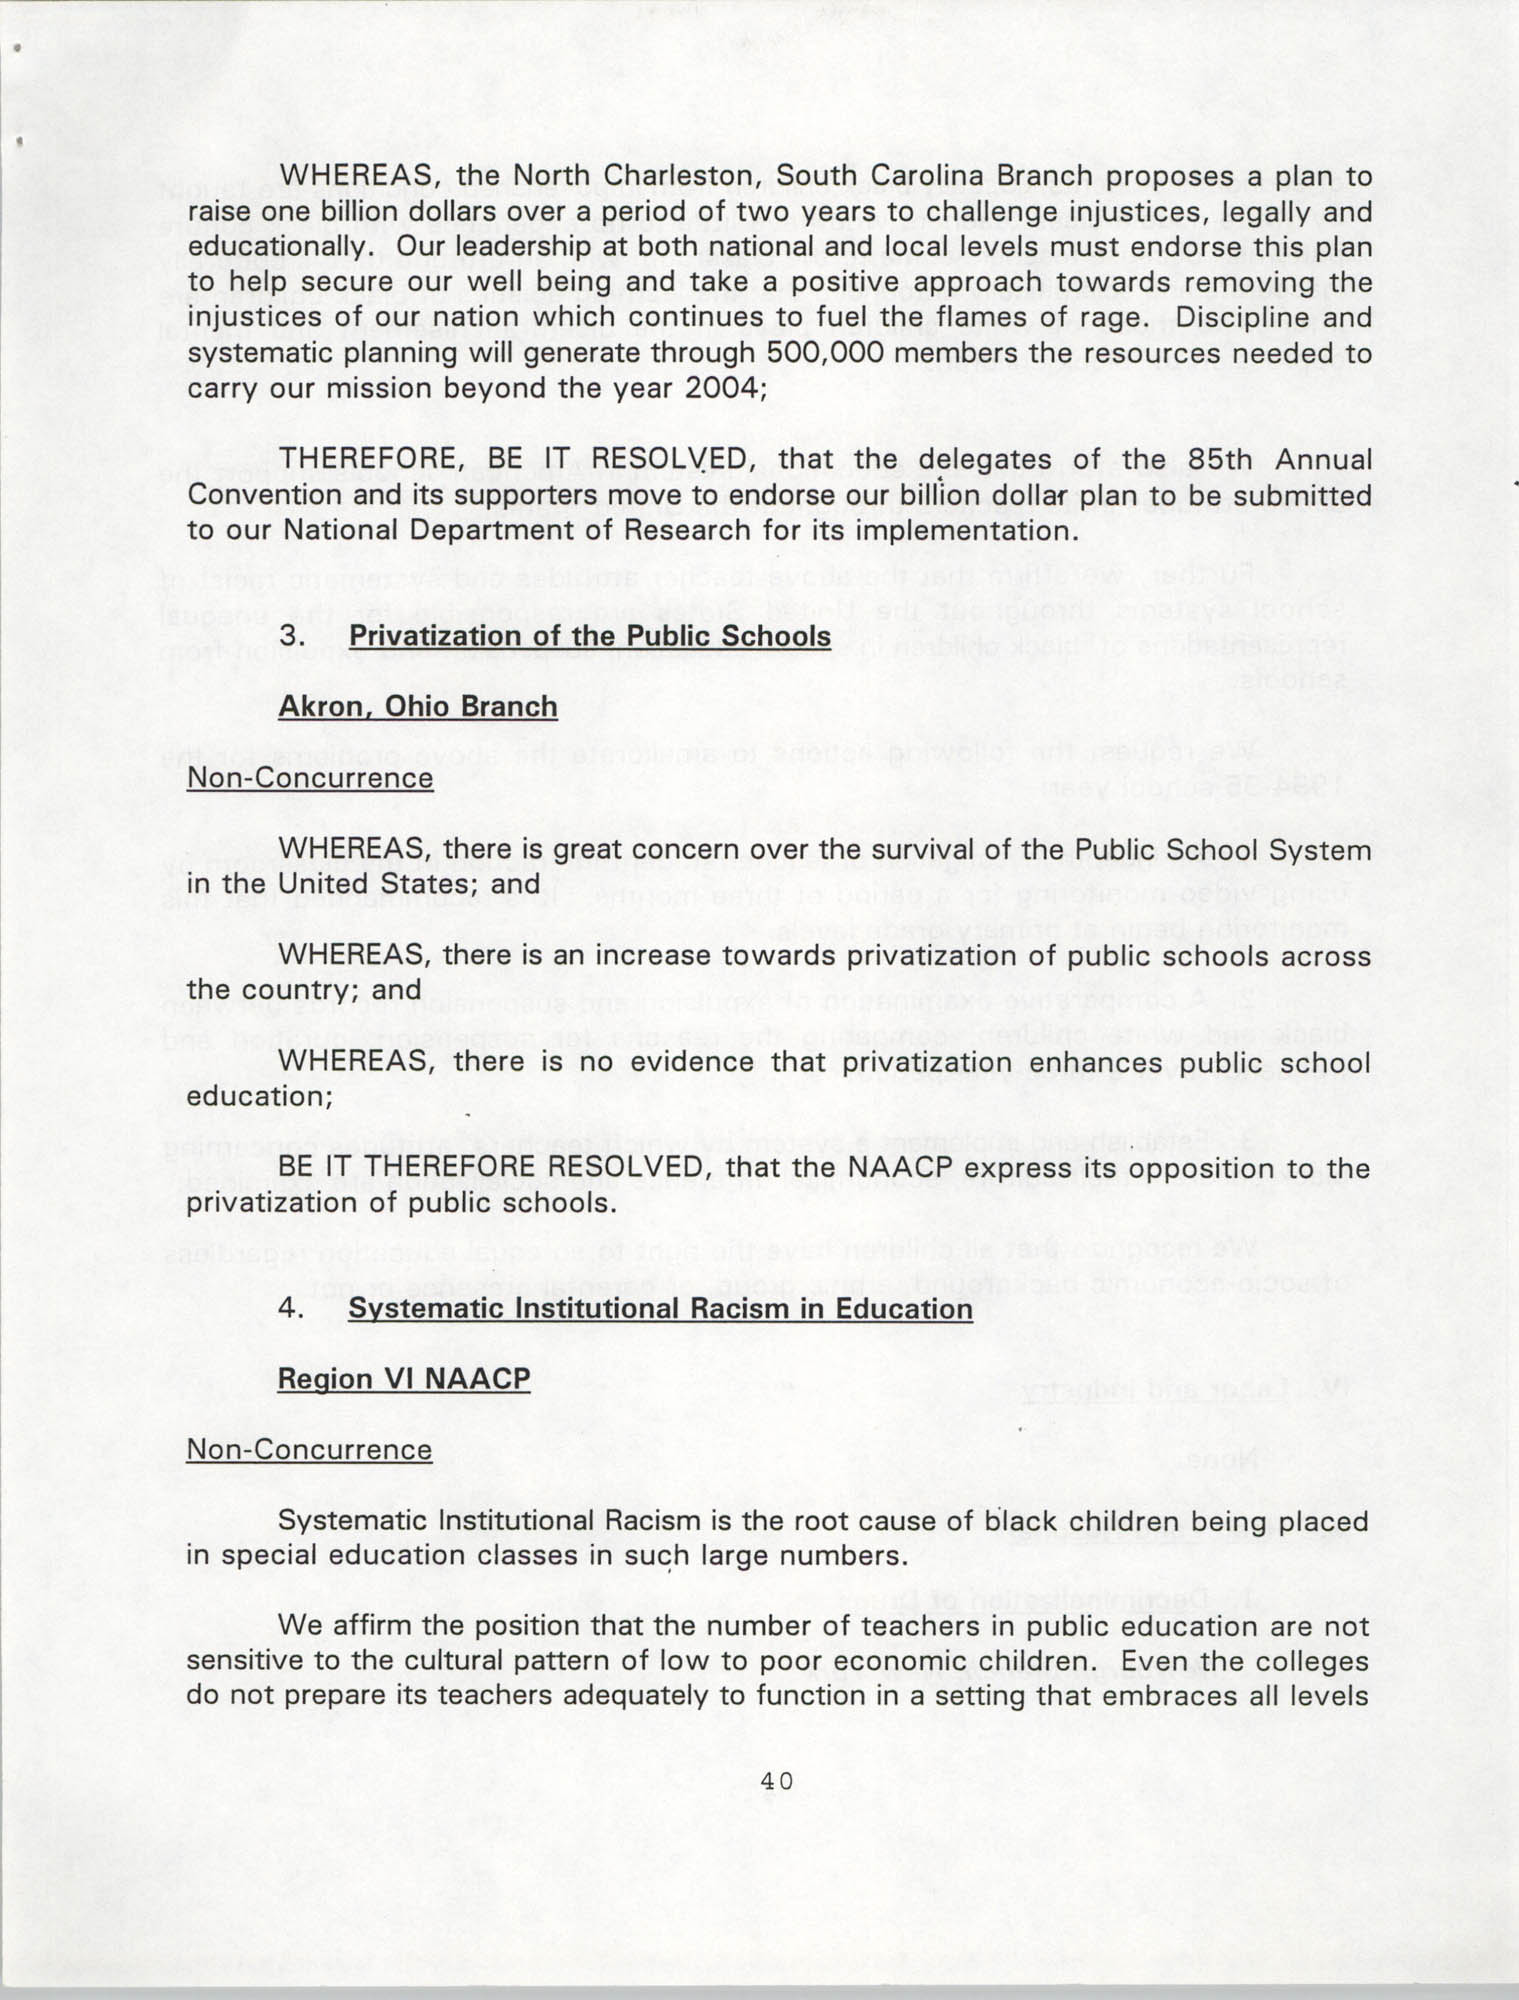 Resolutions Submitted Under Article X, Section 2 of the Constitution of the NAACP, 1994, Page 40